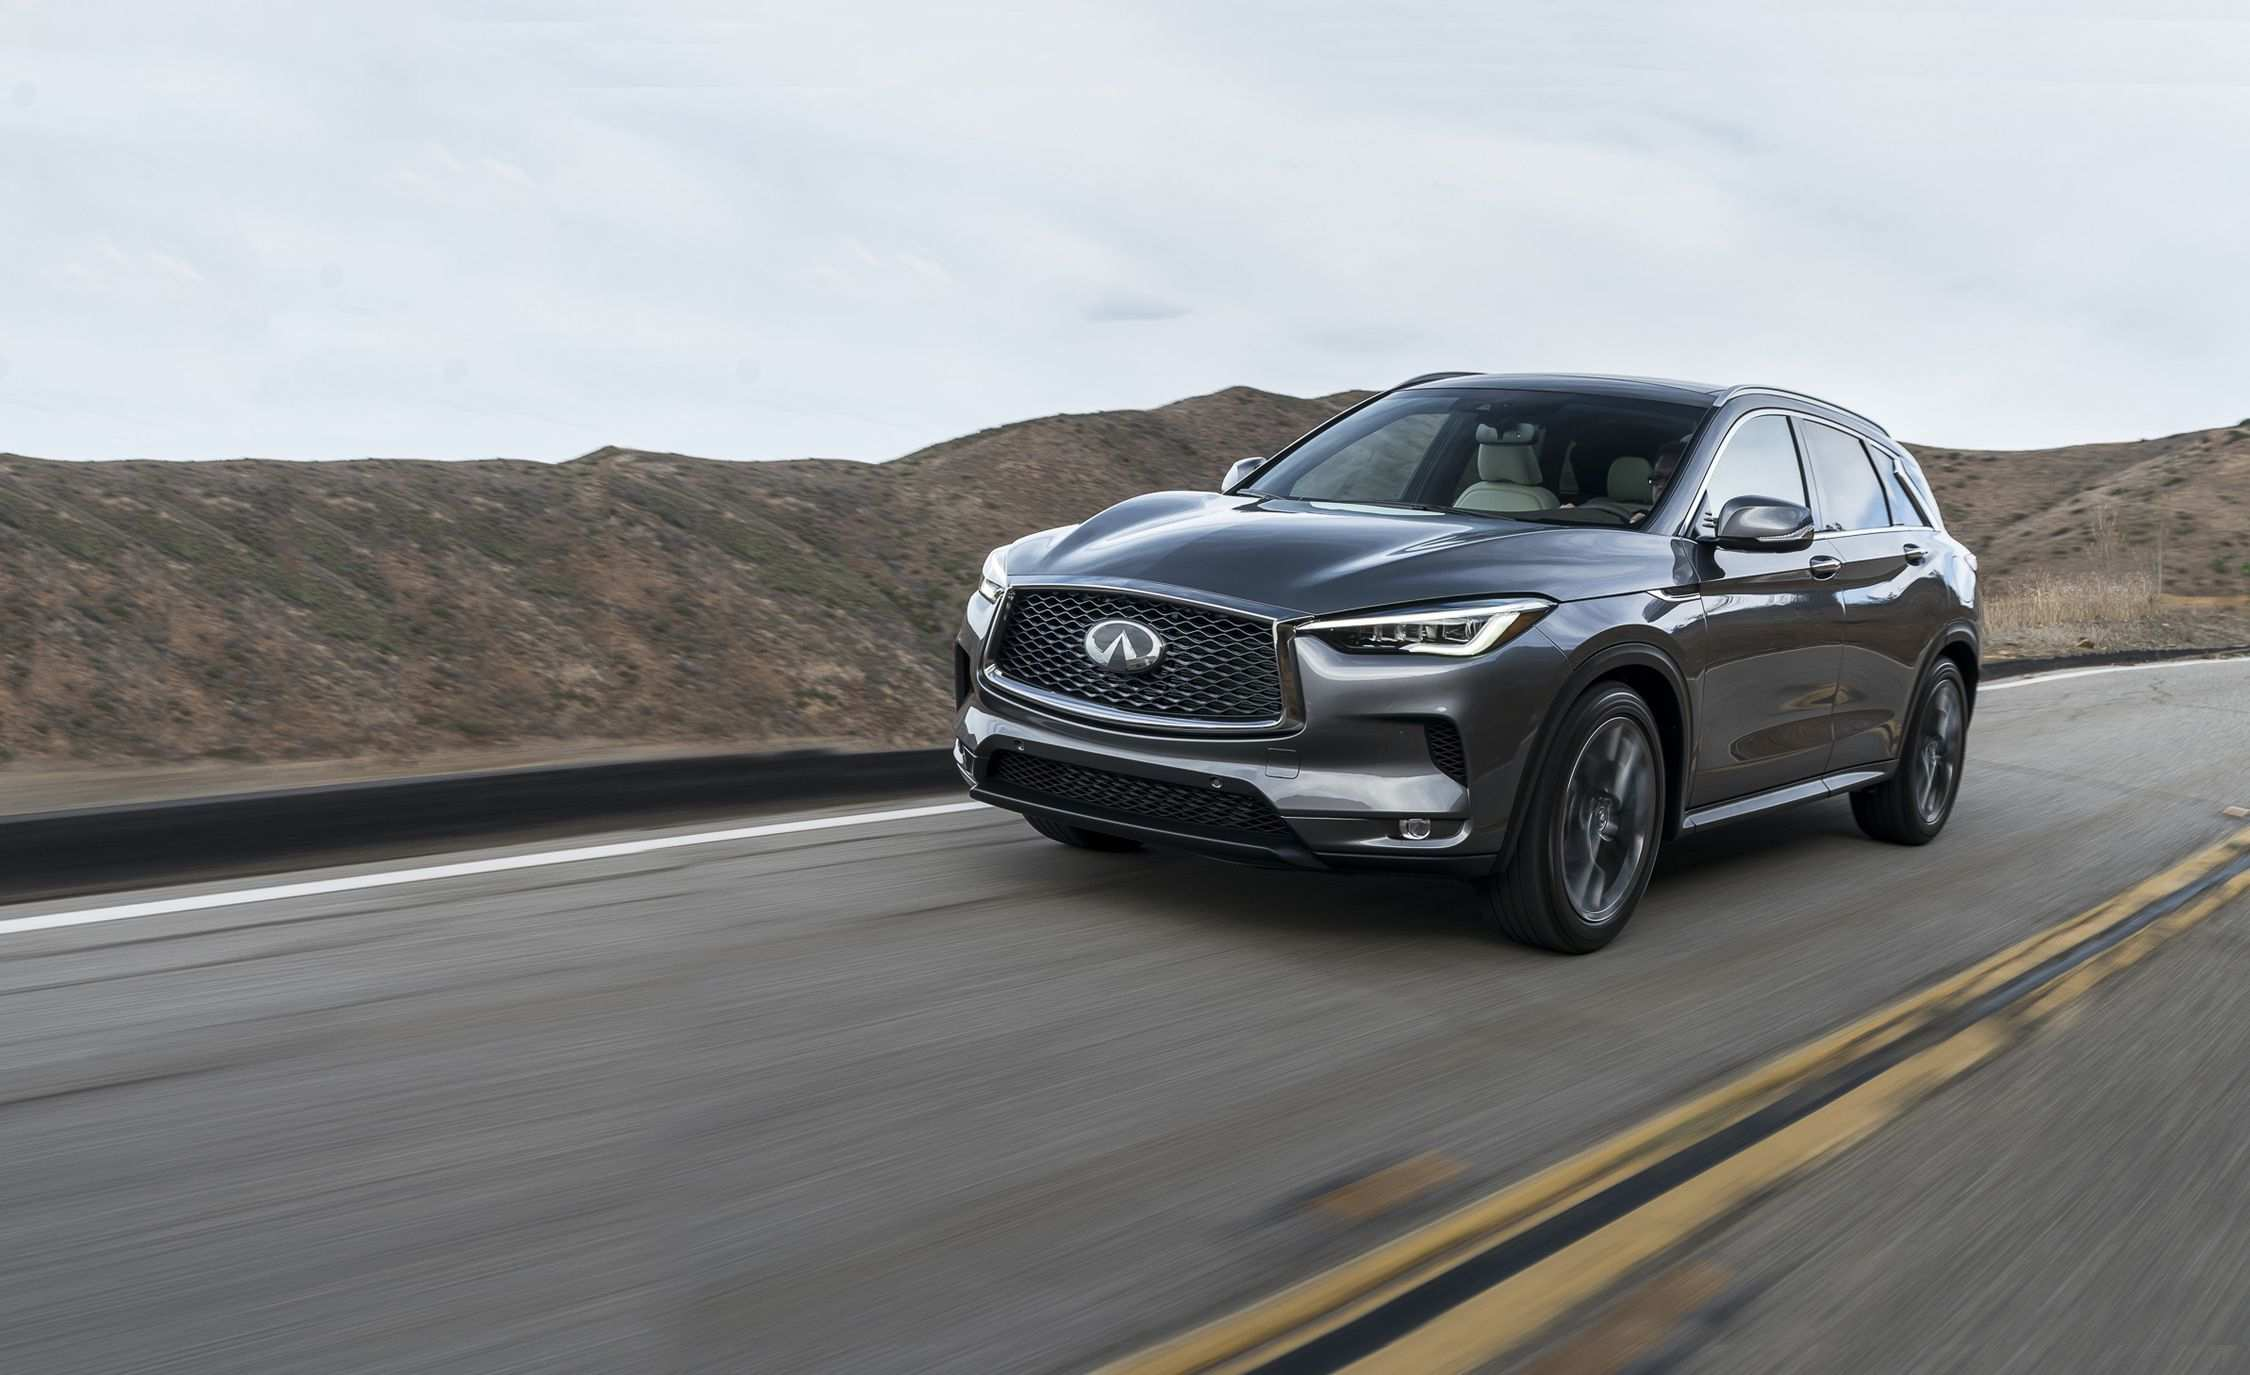 80 Gallery of 2019 Infiniti Qx50 Wiki Exterior and Interior for 2019 Infiniti Qx50 Wiki